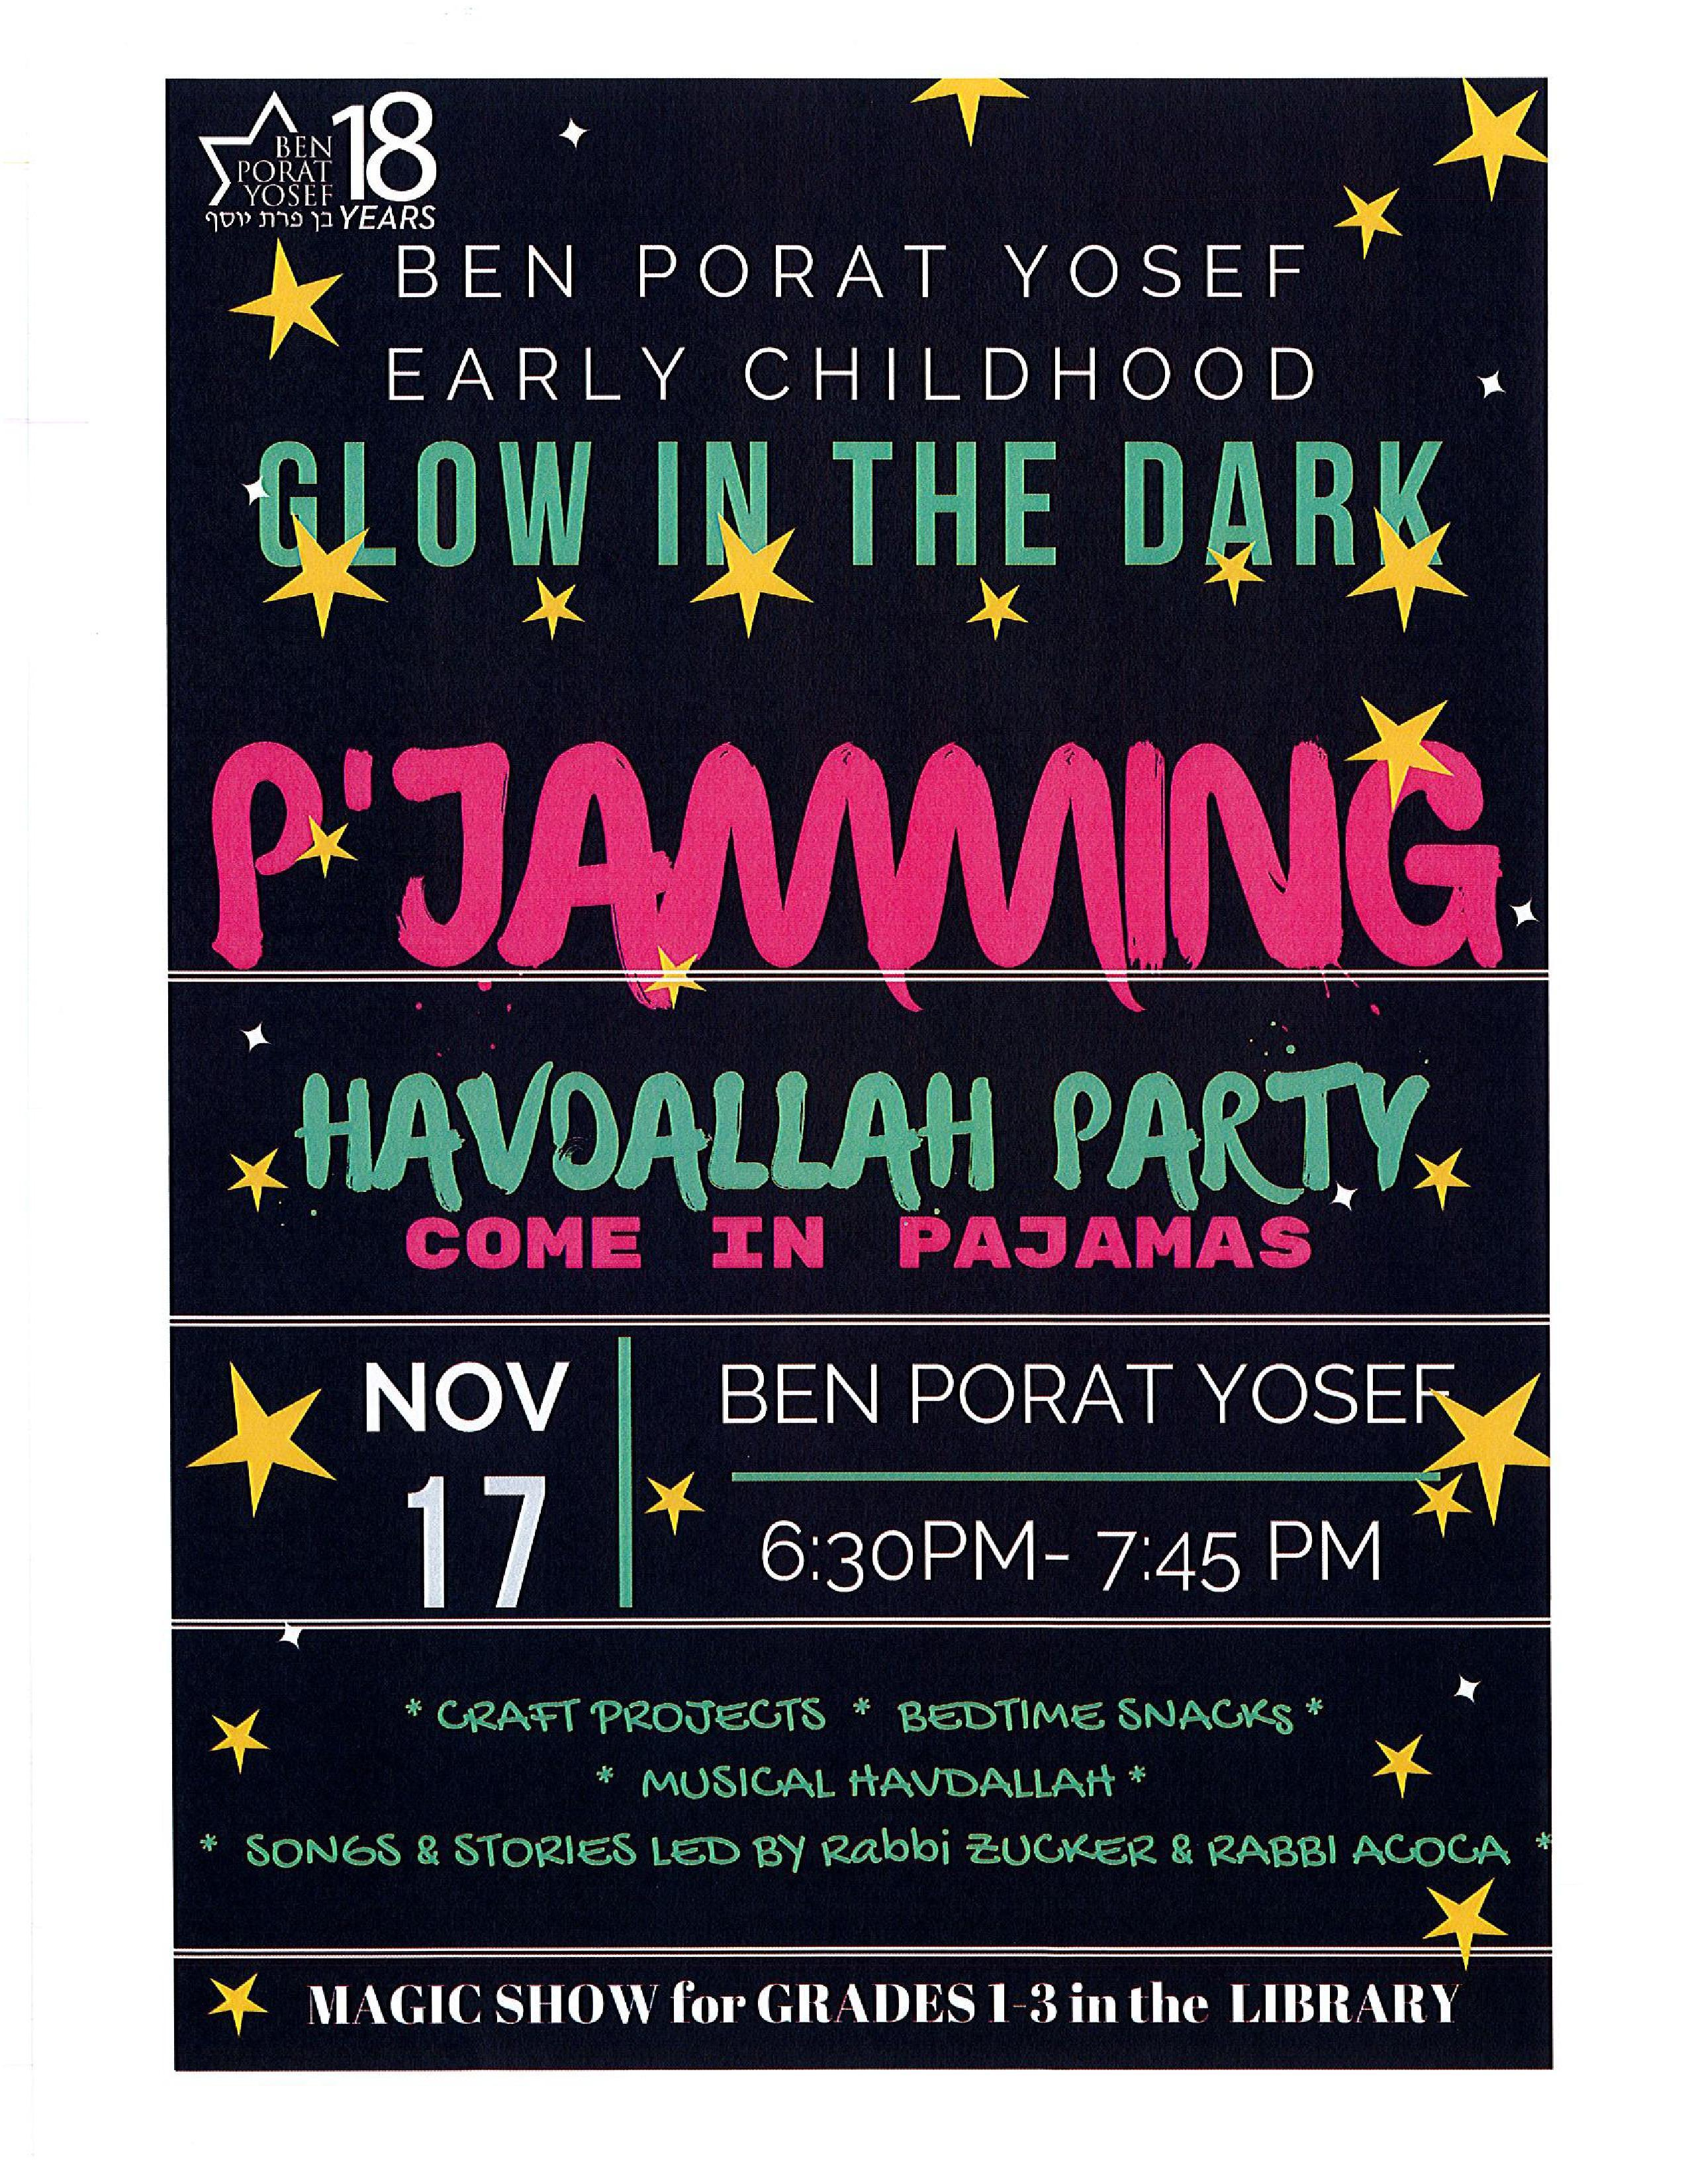 Flyer for Upcoming Havdallah Party on November 17th at 6:30 p.m.